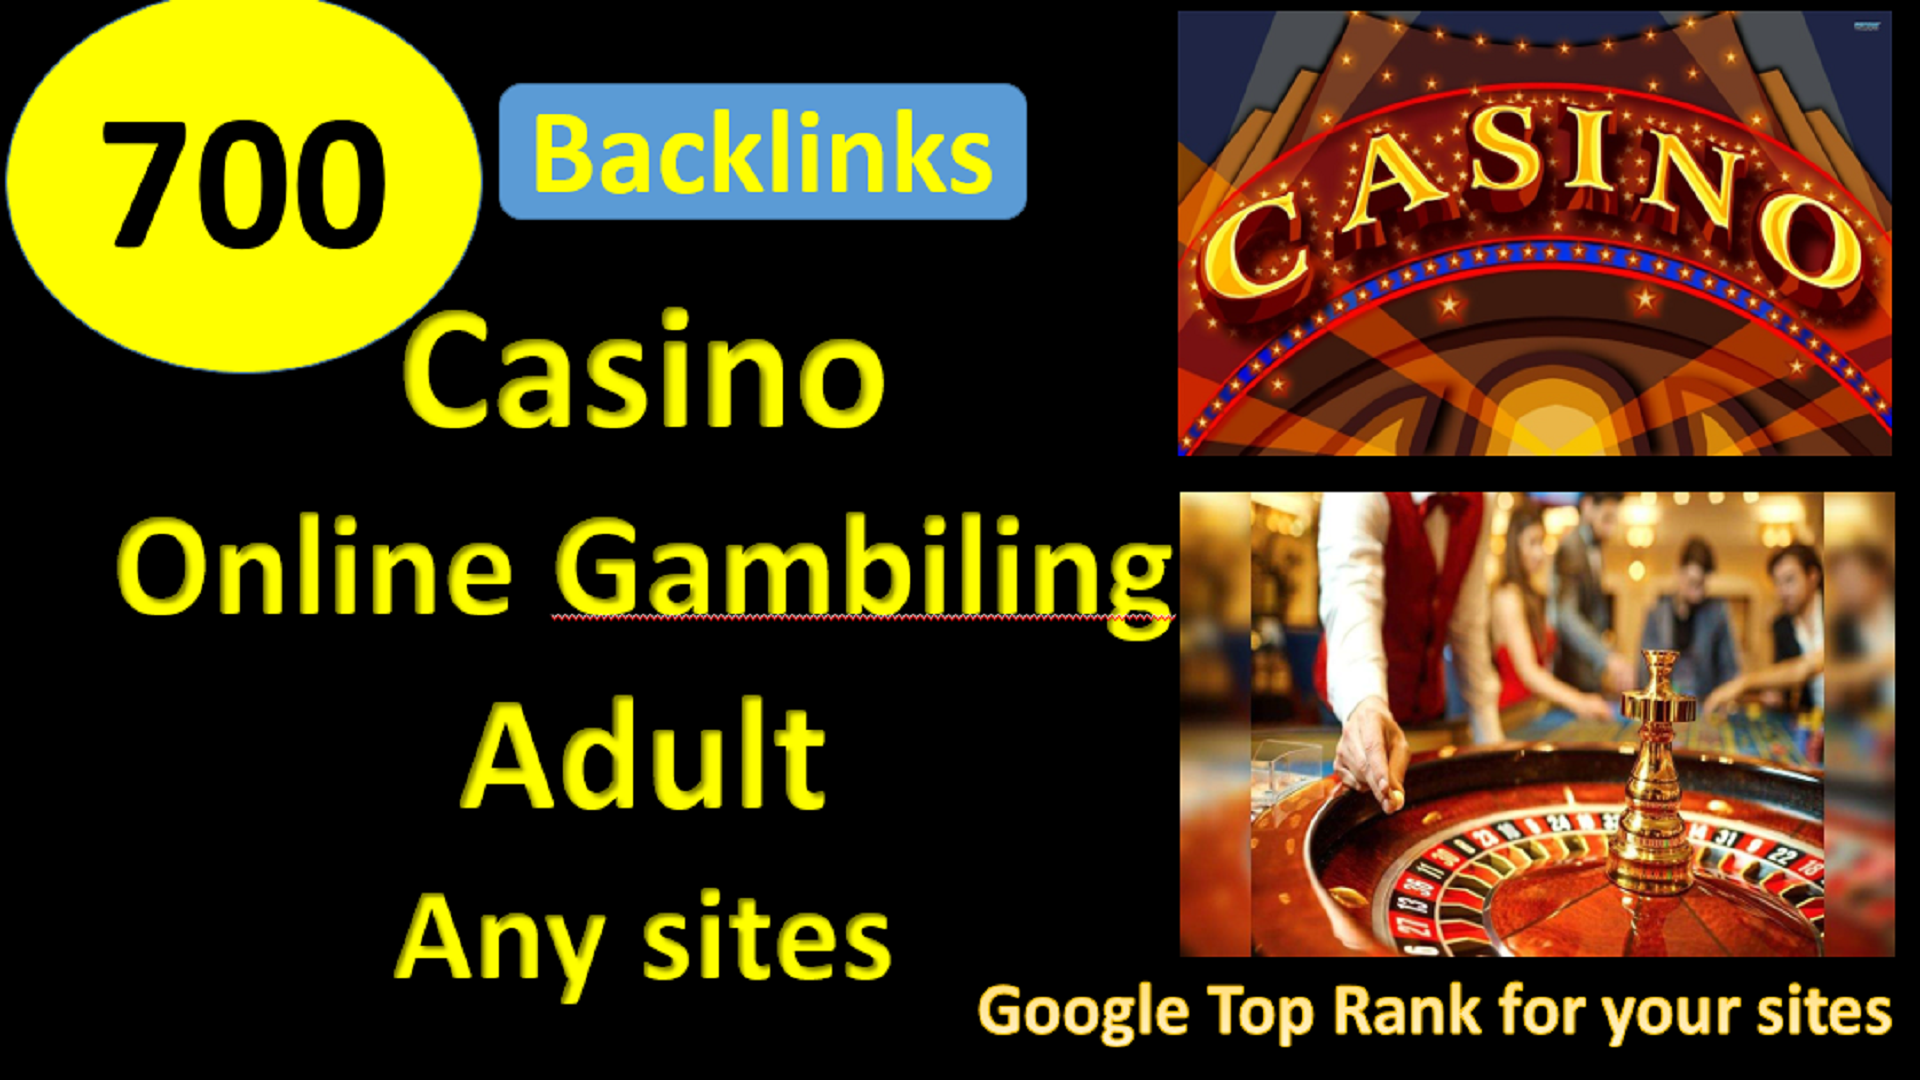 700+Webpbn,  Profile,  EDU,  Blog comment, CASINO/GAMBILING/ ADULT SITES/ ANY SITES FOR GOOGLE 1ST PAGE